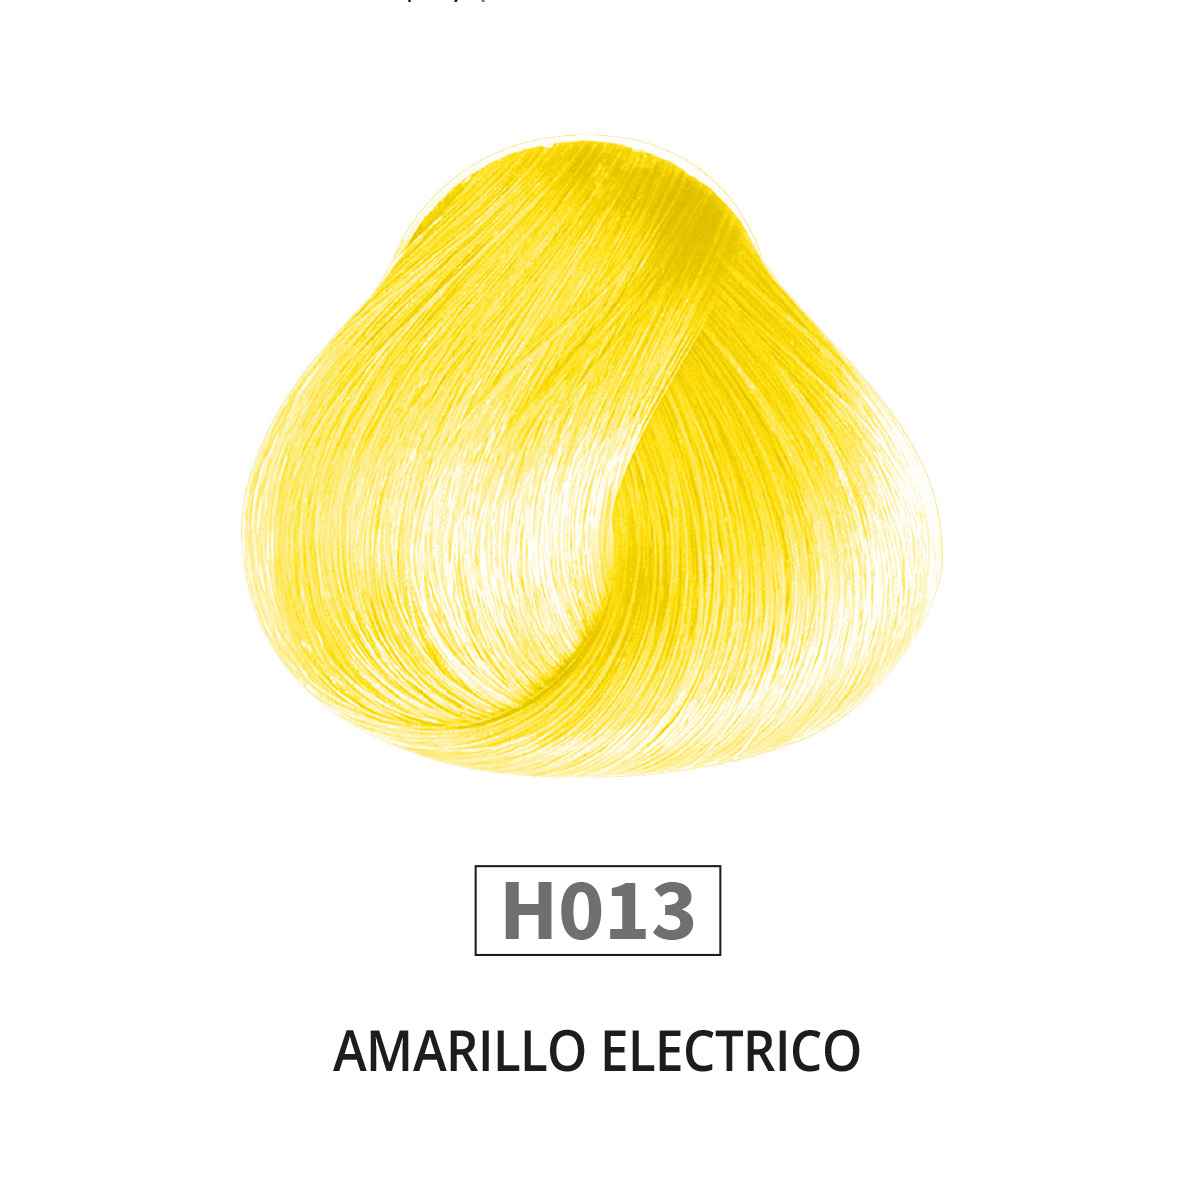 Amarillo Electrico H013 - Yanguas Professional